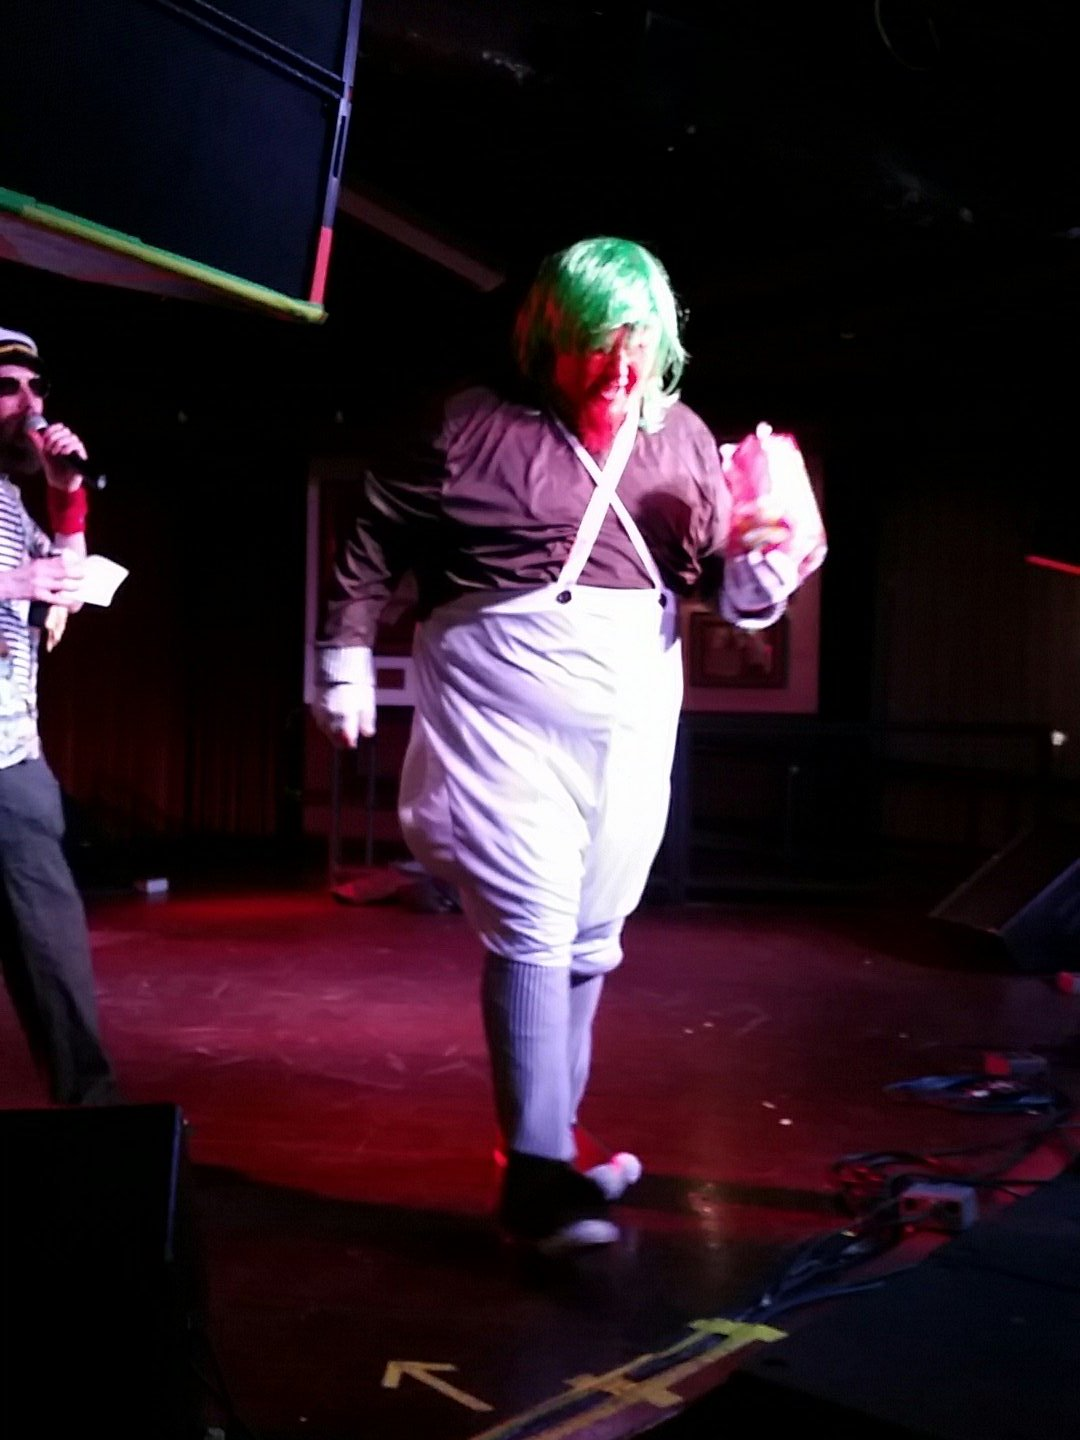 Big Red was an Oompa Loompa and I didn't get a good picture while he was performing, what a letdown I am #usairguitar https://t.co/AX9OxT0miL